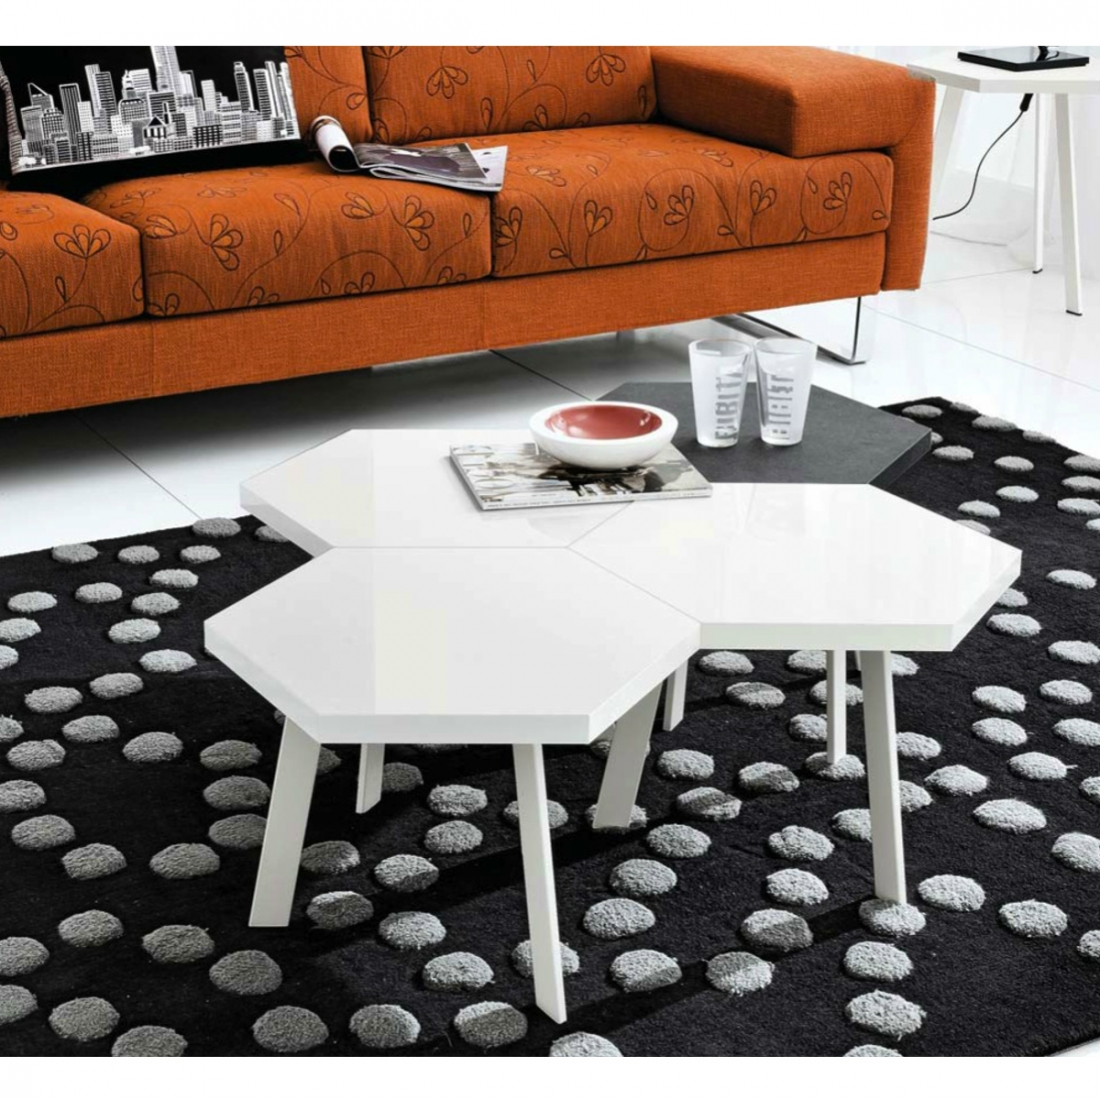 Table d appoint basse design rossella - Table basse d appoint ...